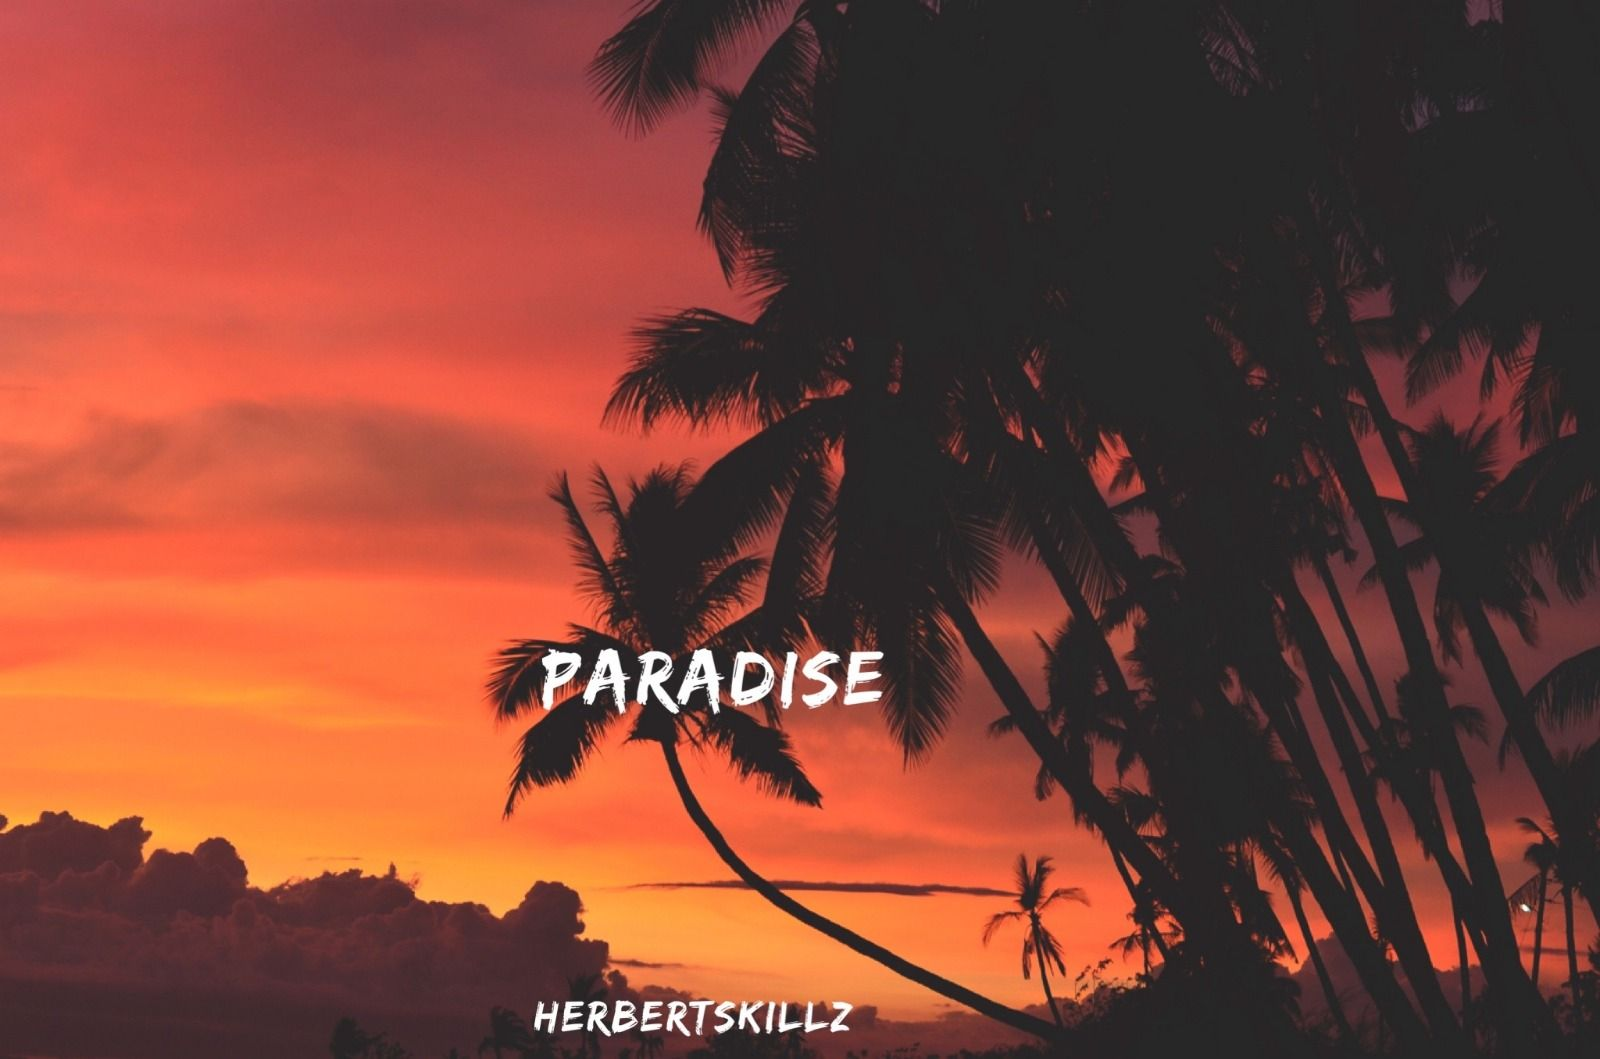 Paradise Soft Piano / Acoustic Guitar Relaxing Instrumental